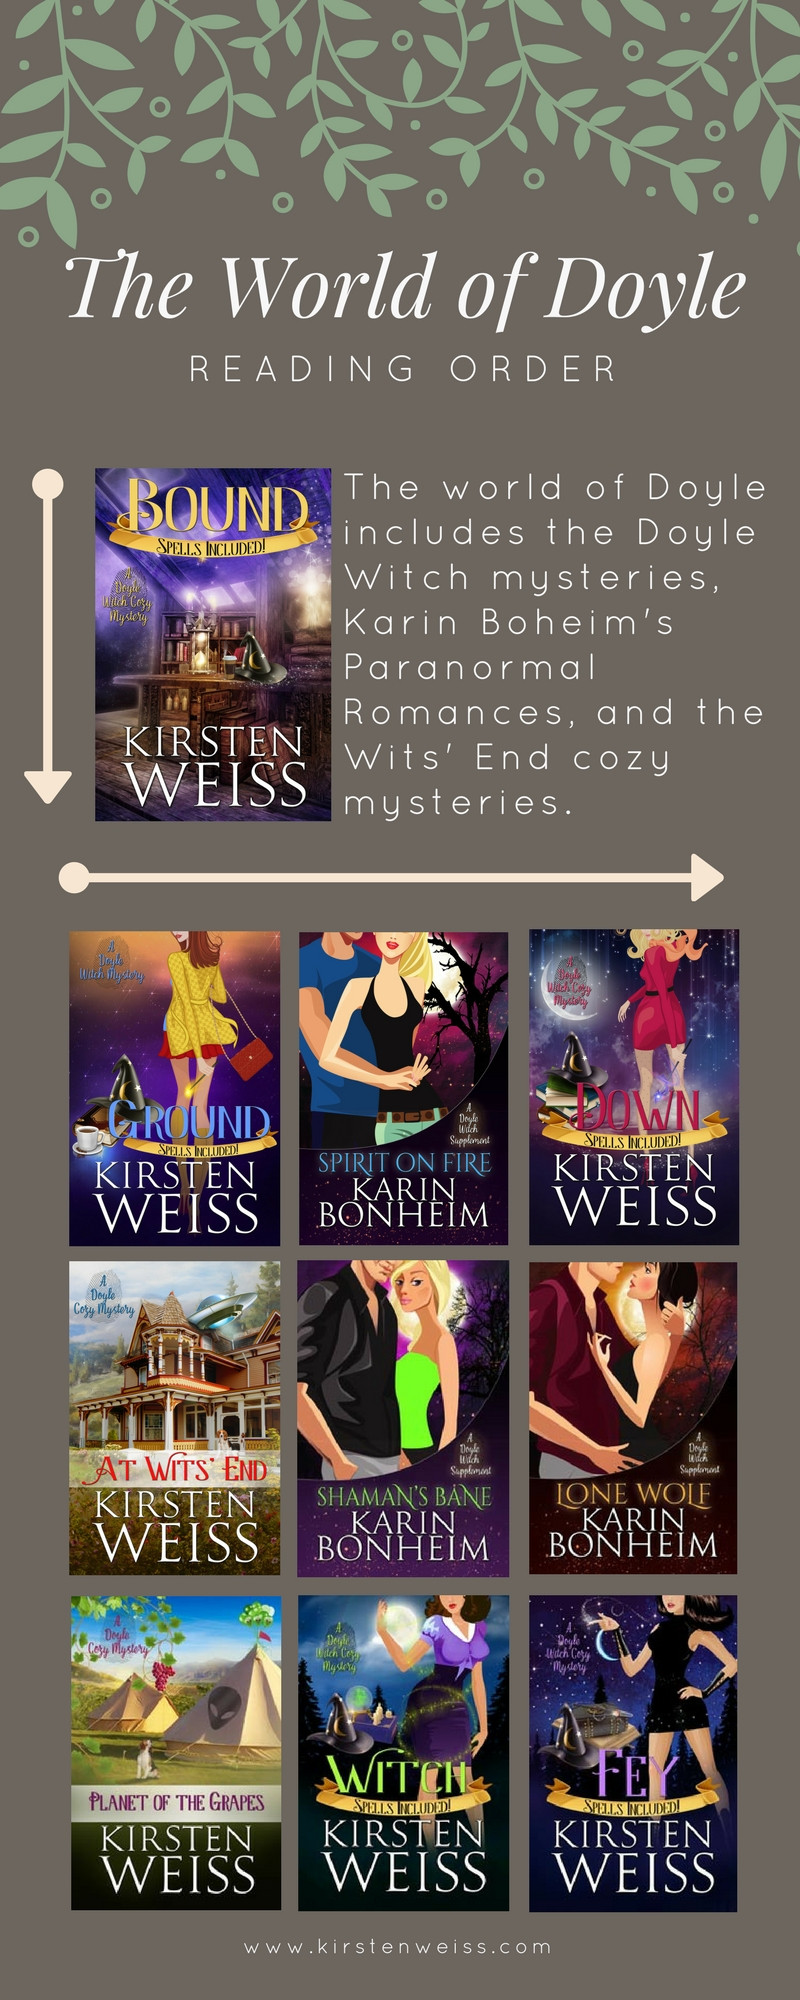 The World of Doyle - Kirsten WEiss